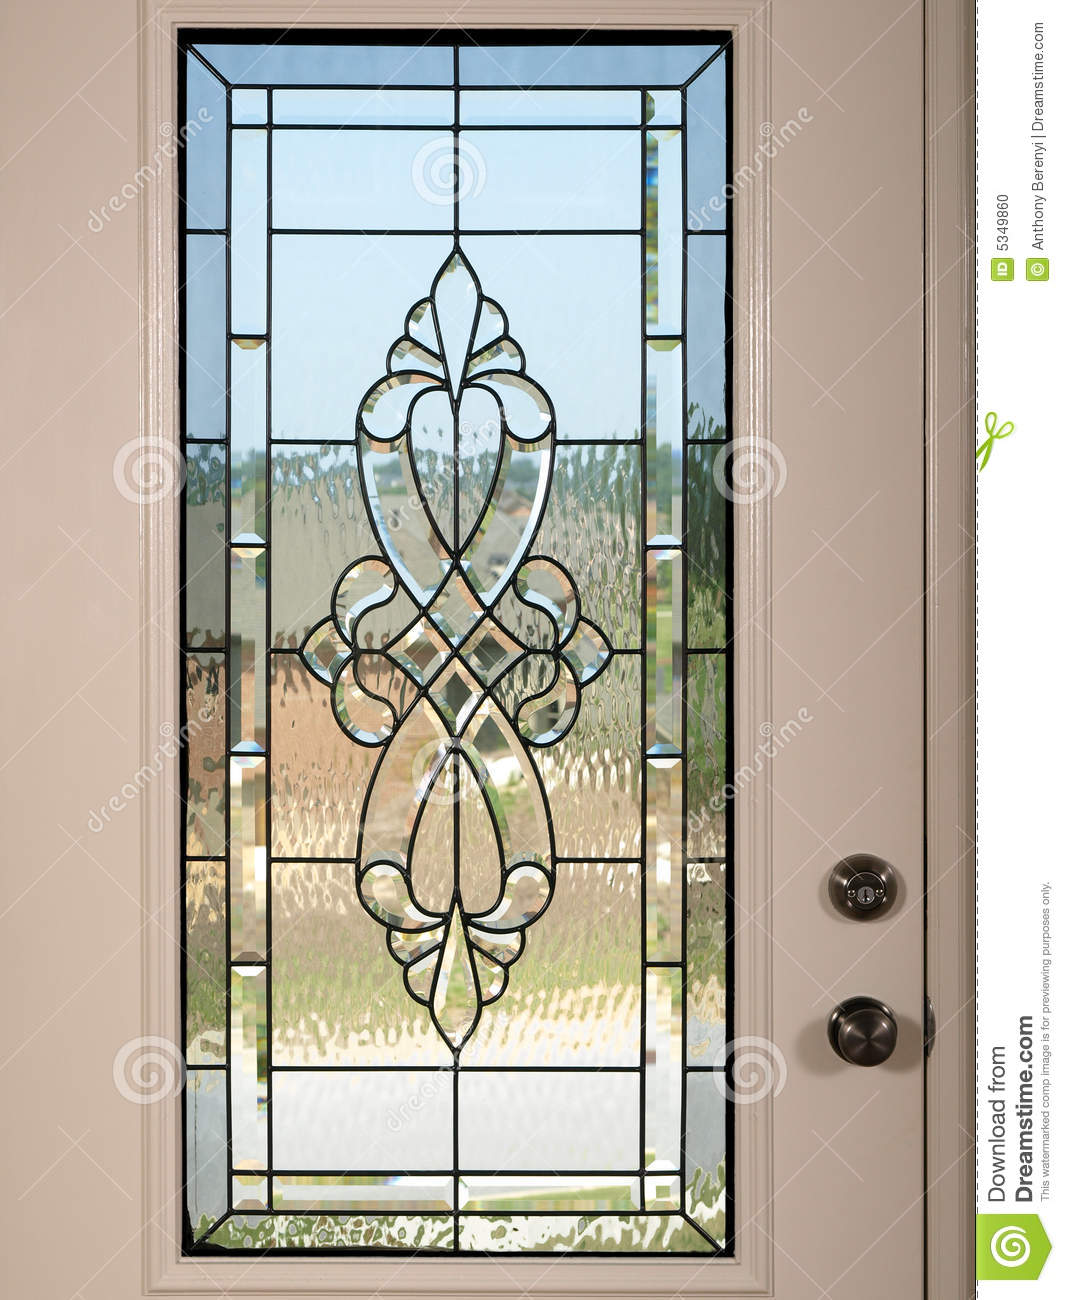 Luxury model home stained glass front door stock photo - Luxury Model Home Front Door 2 Stock Photo Image 5349860